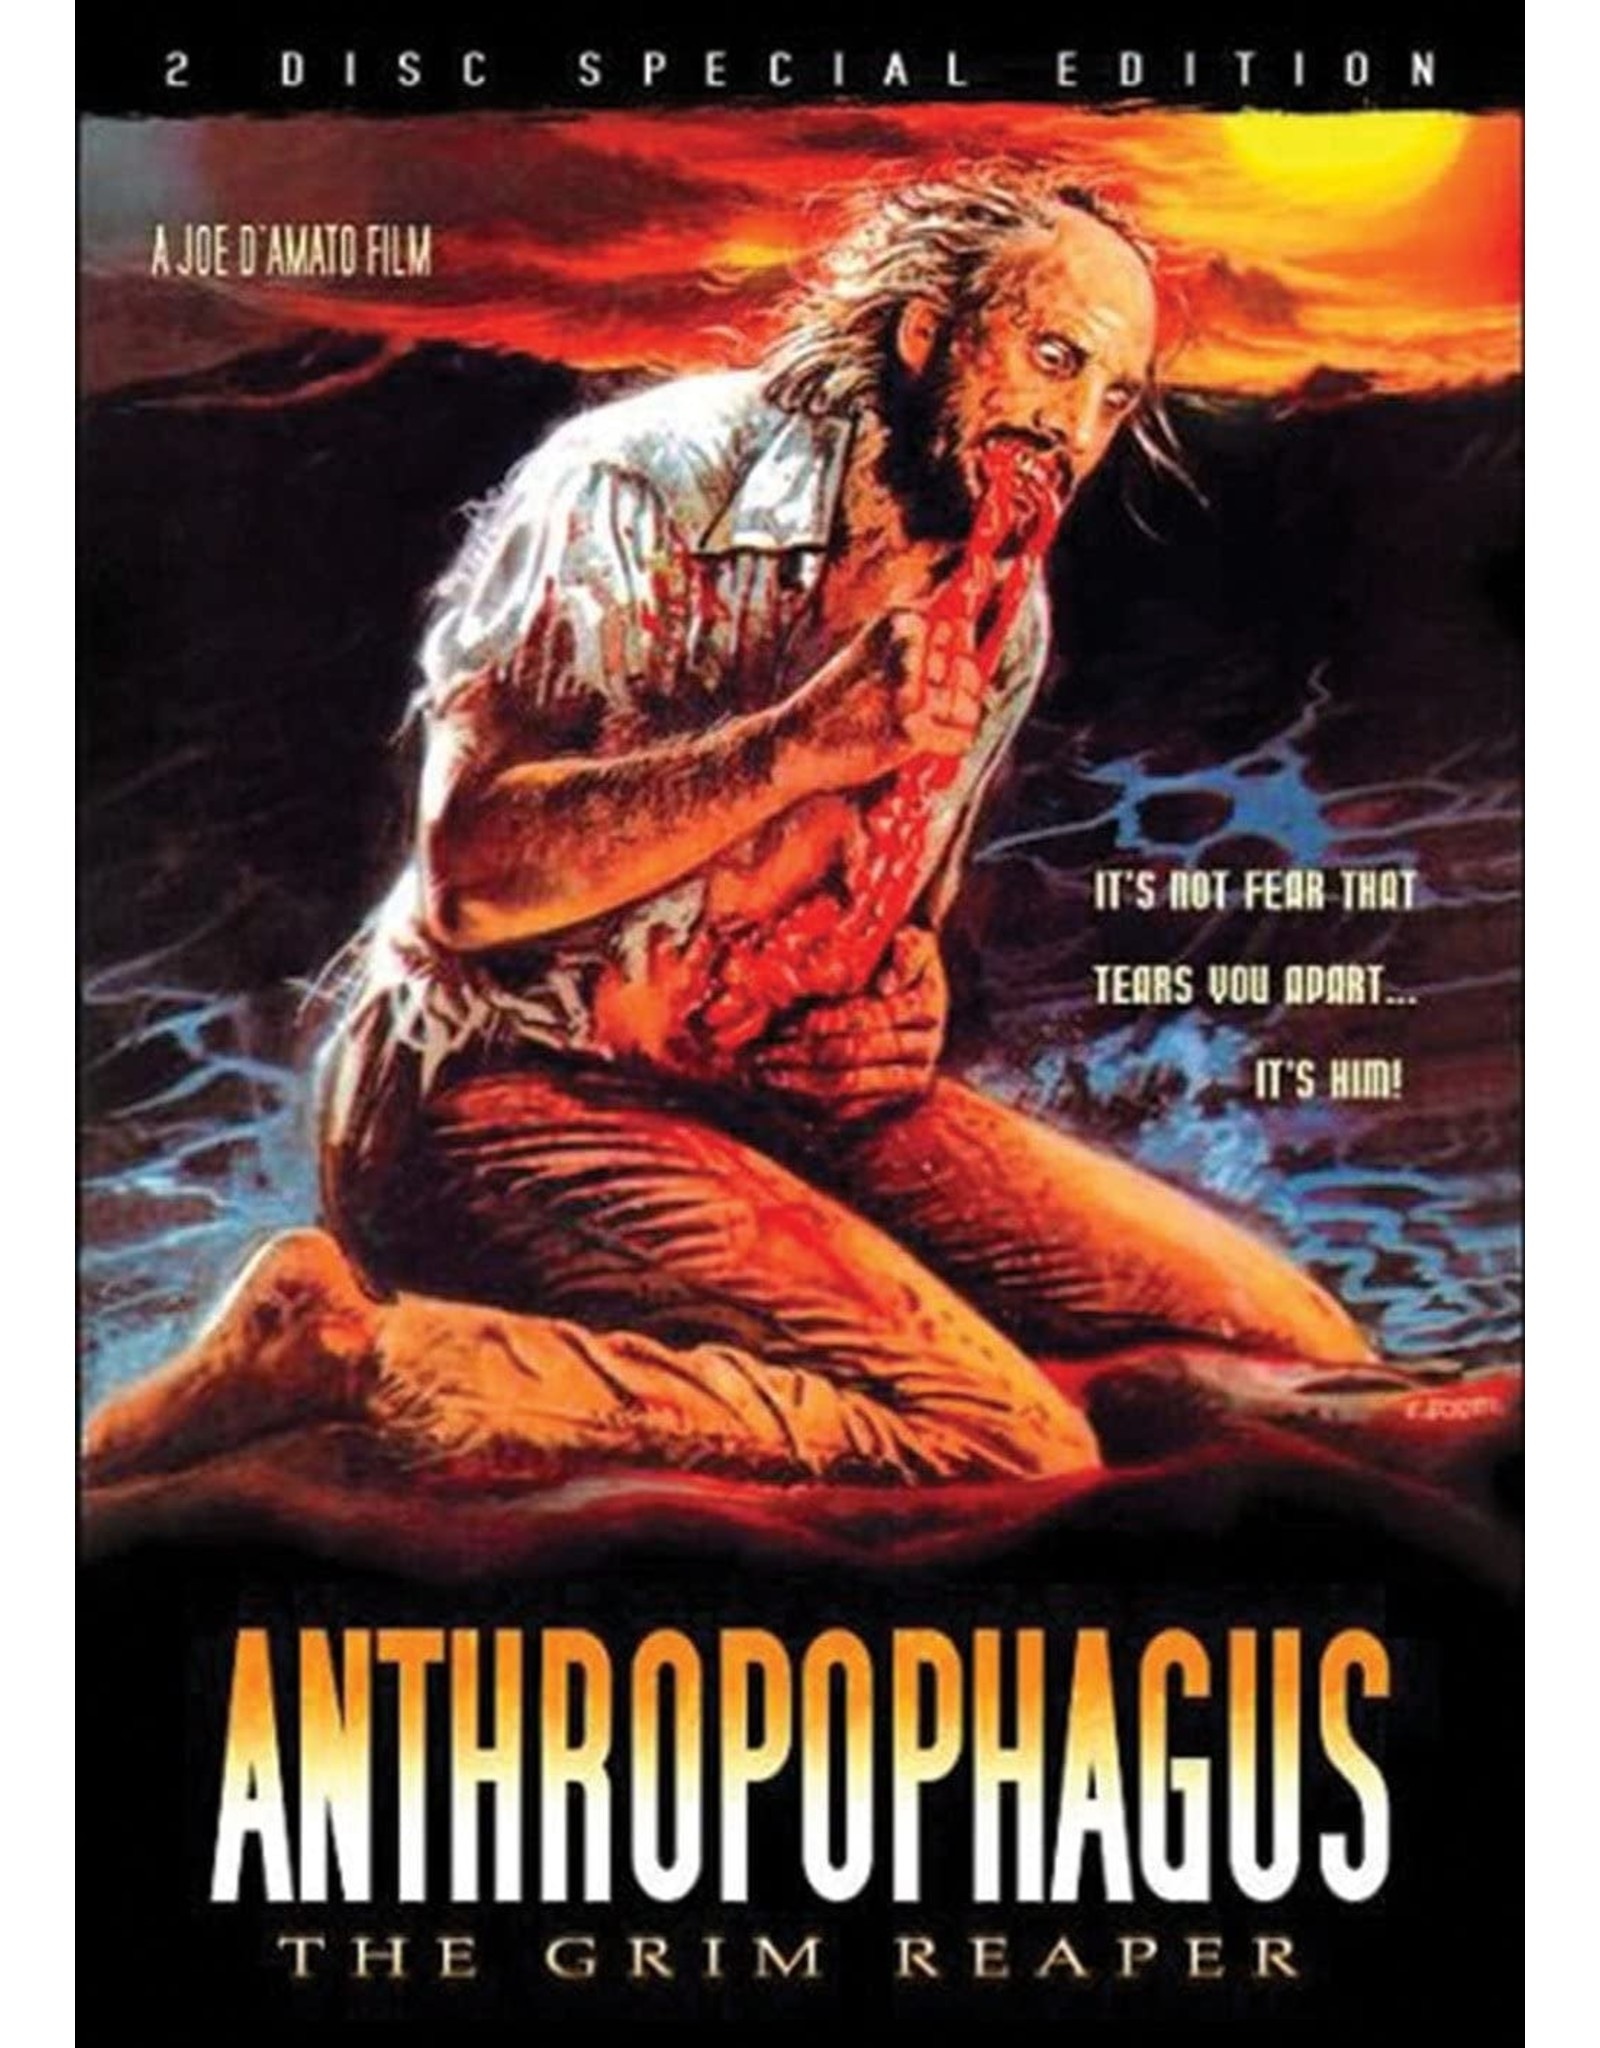 Horror Cult Anthropophagus 2-Disc Special Edition